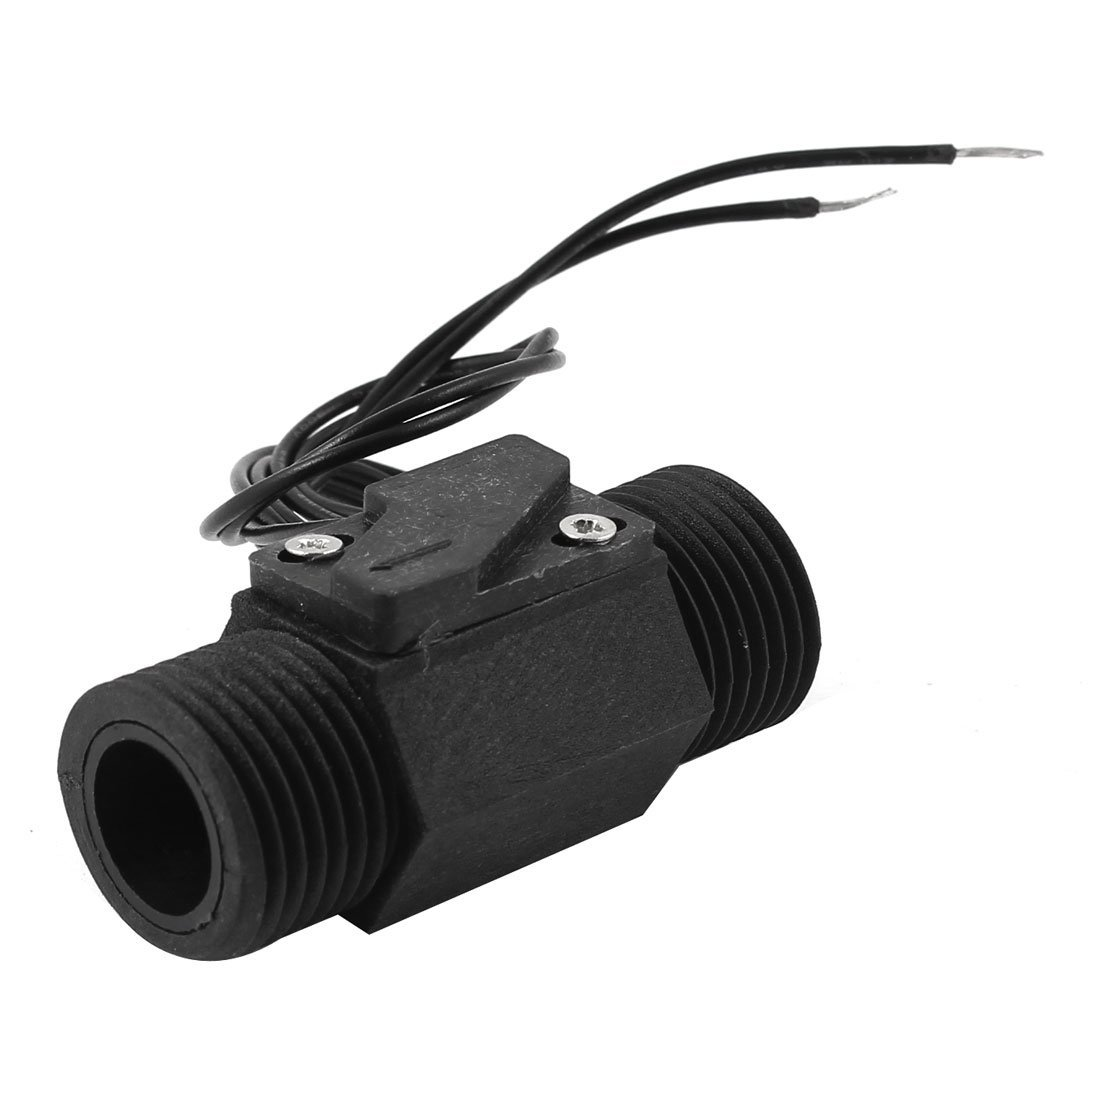 0.1A 100V Plastic Shell Liquid Water Flow Sensor Switches 0.75-5L/Min